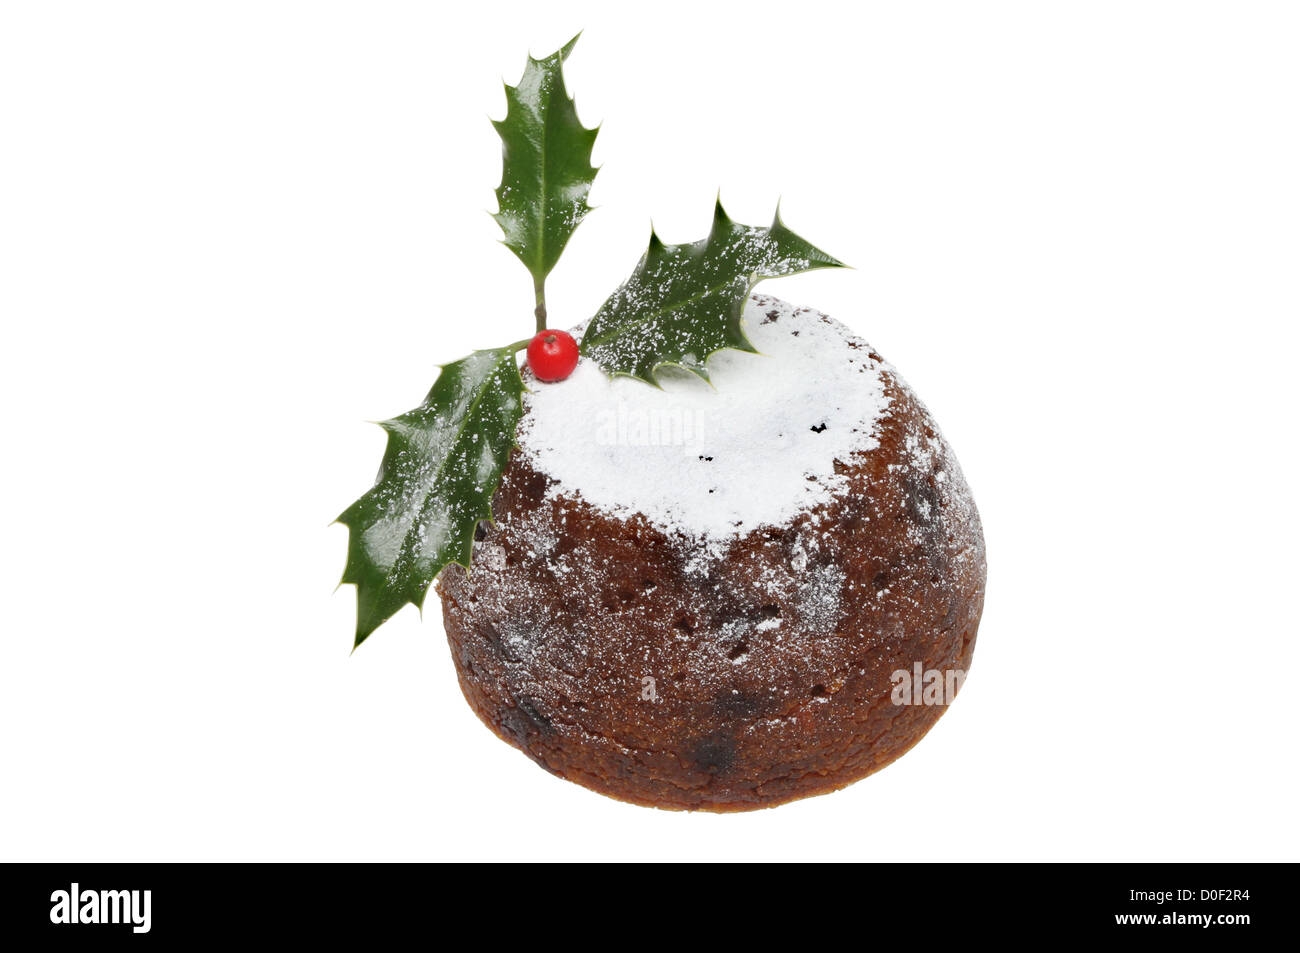 Christmas pudding dusted with icing sugar and decorated with holly isolated against white - Stock Image